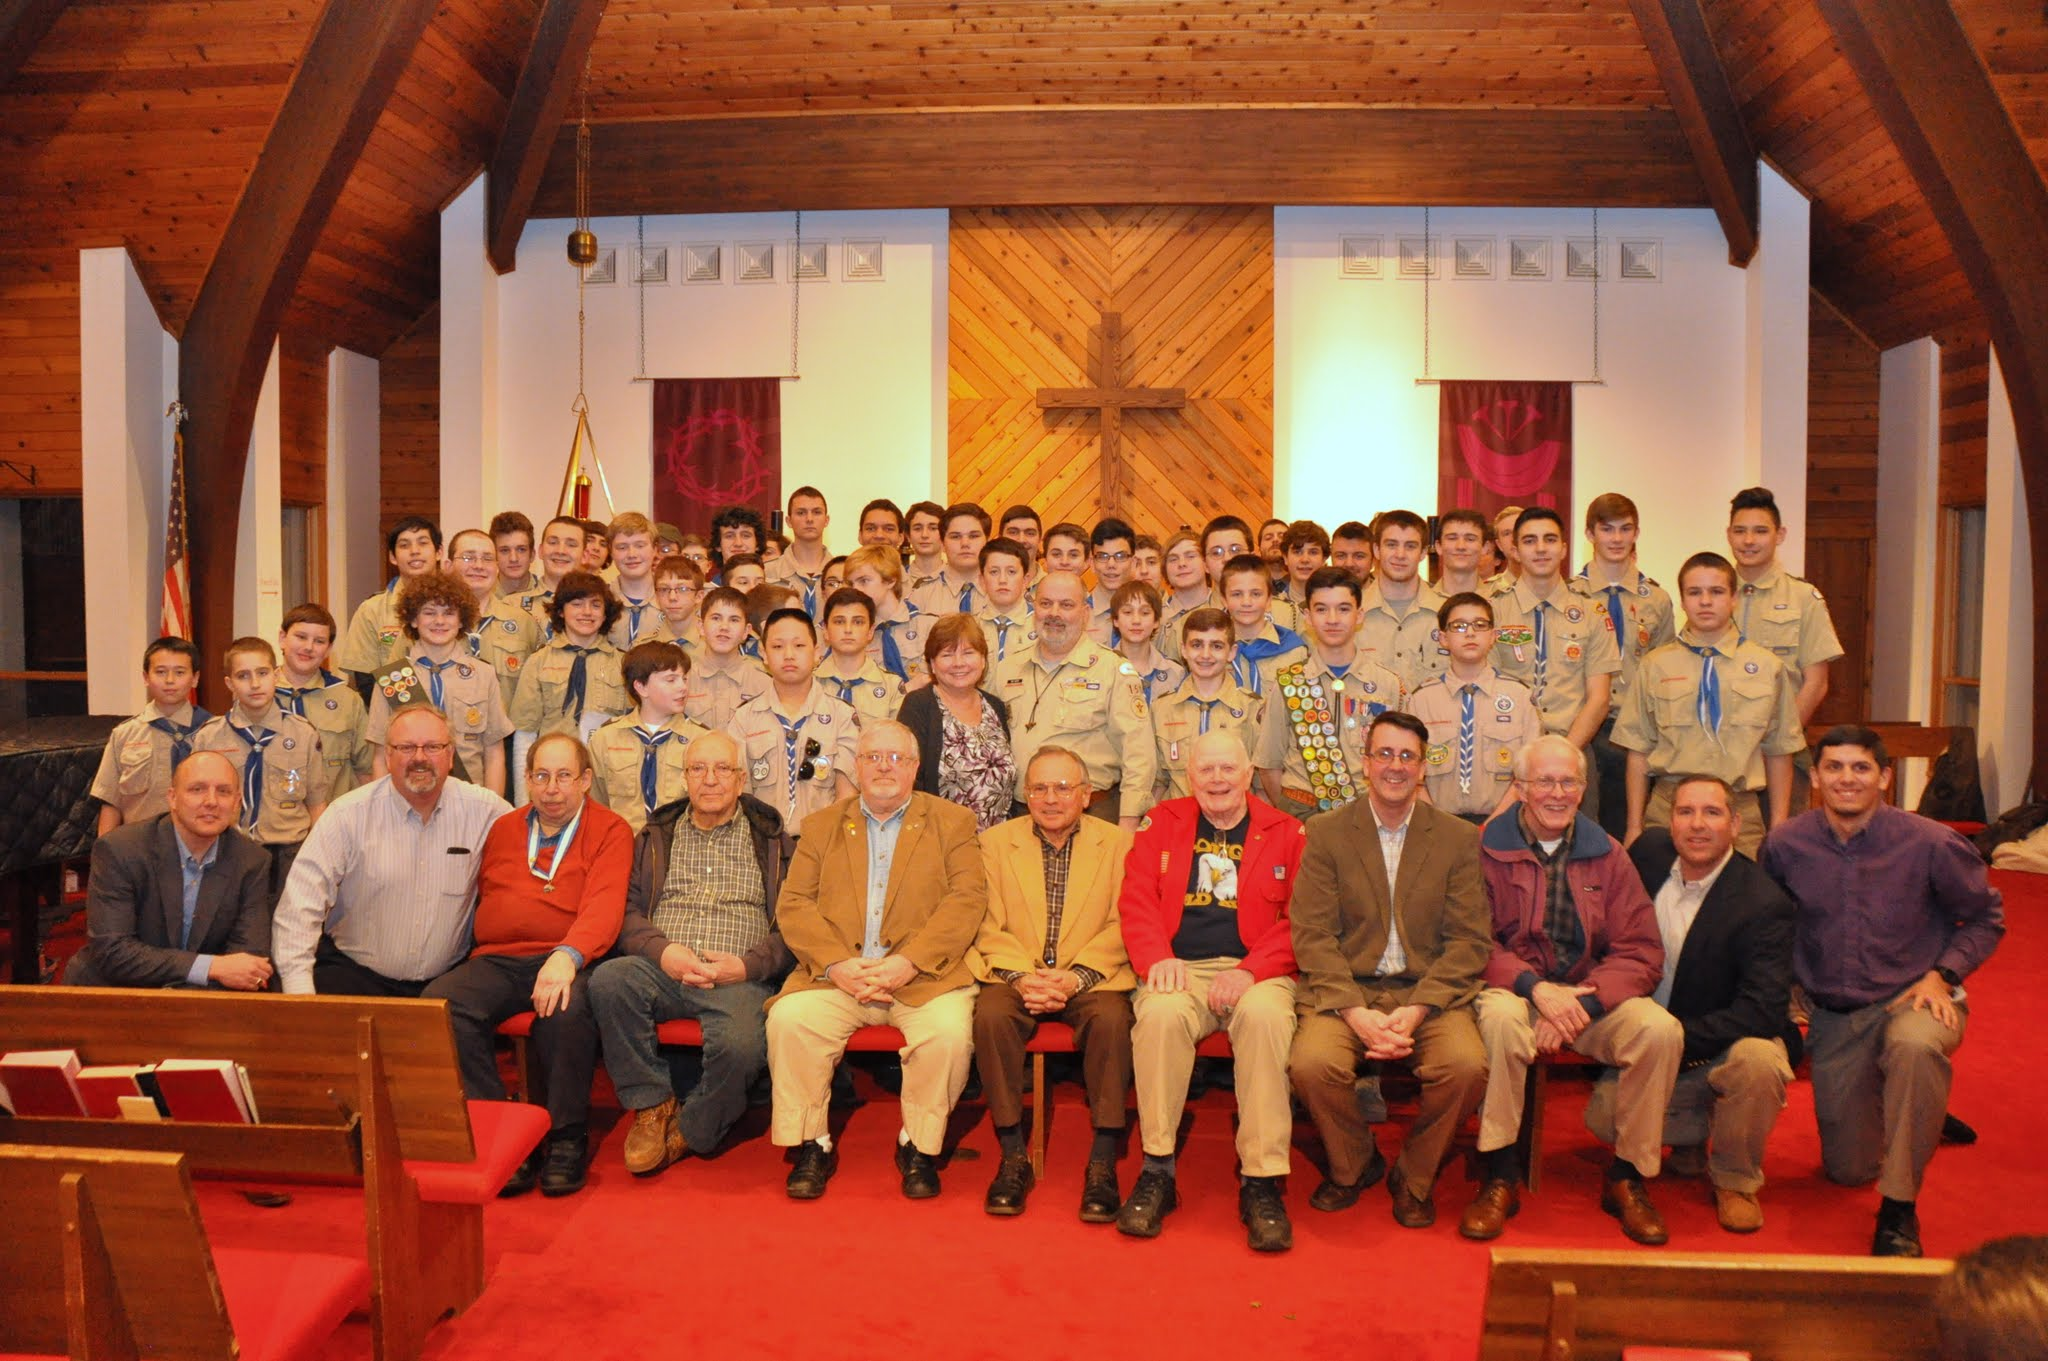 d9e31489841932e94355_Joe_with_Troop_150_and_Former_Troop_mates_and_Leaders.JPG